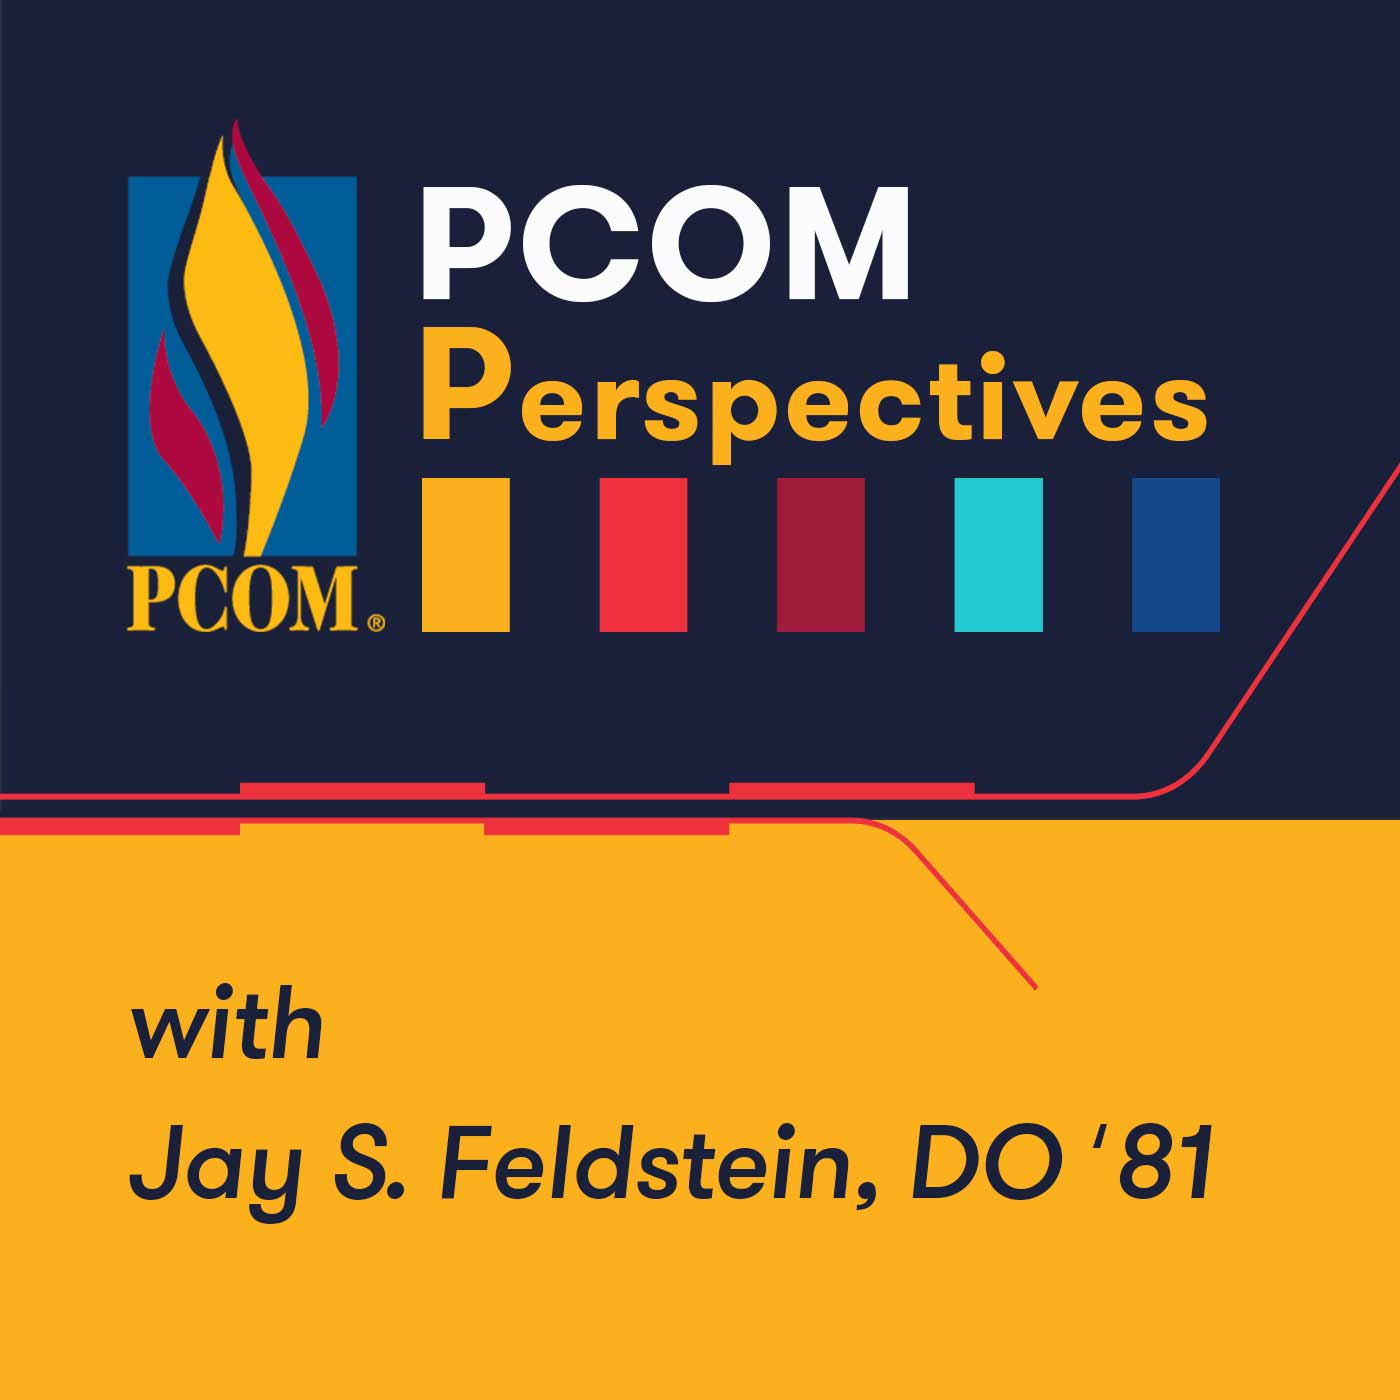 PCOM Perspectives podcast logo